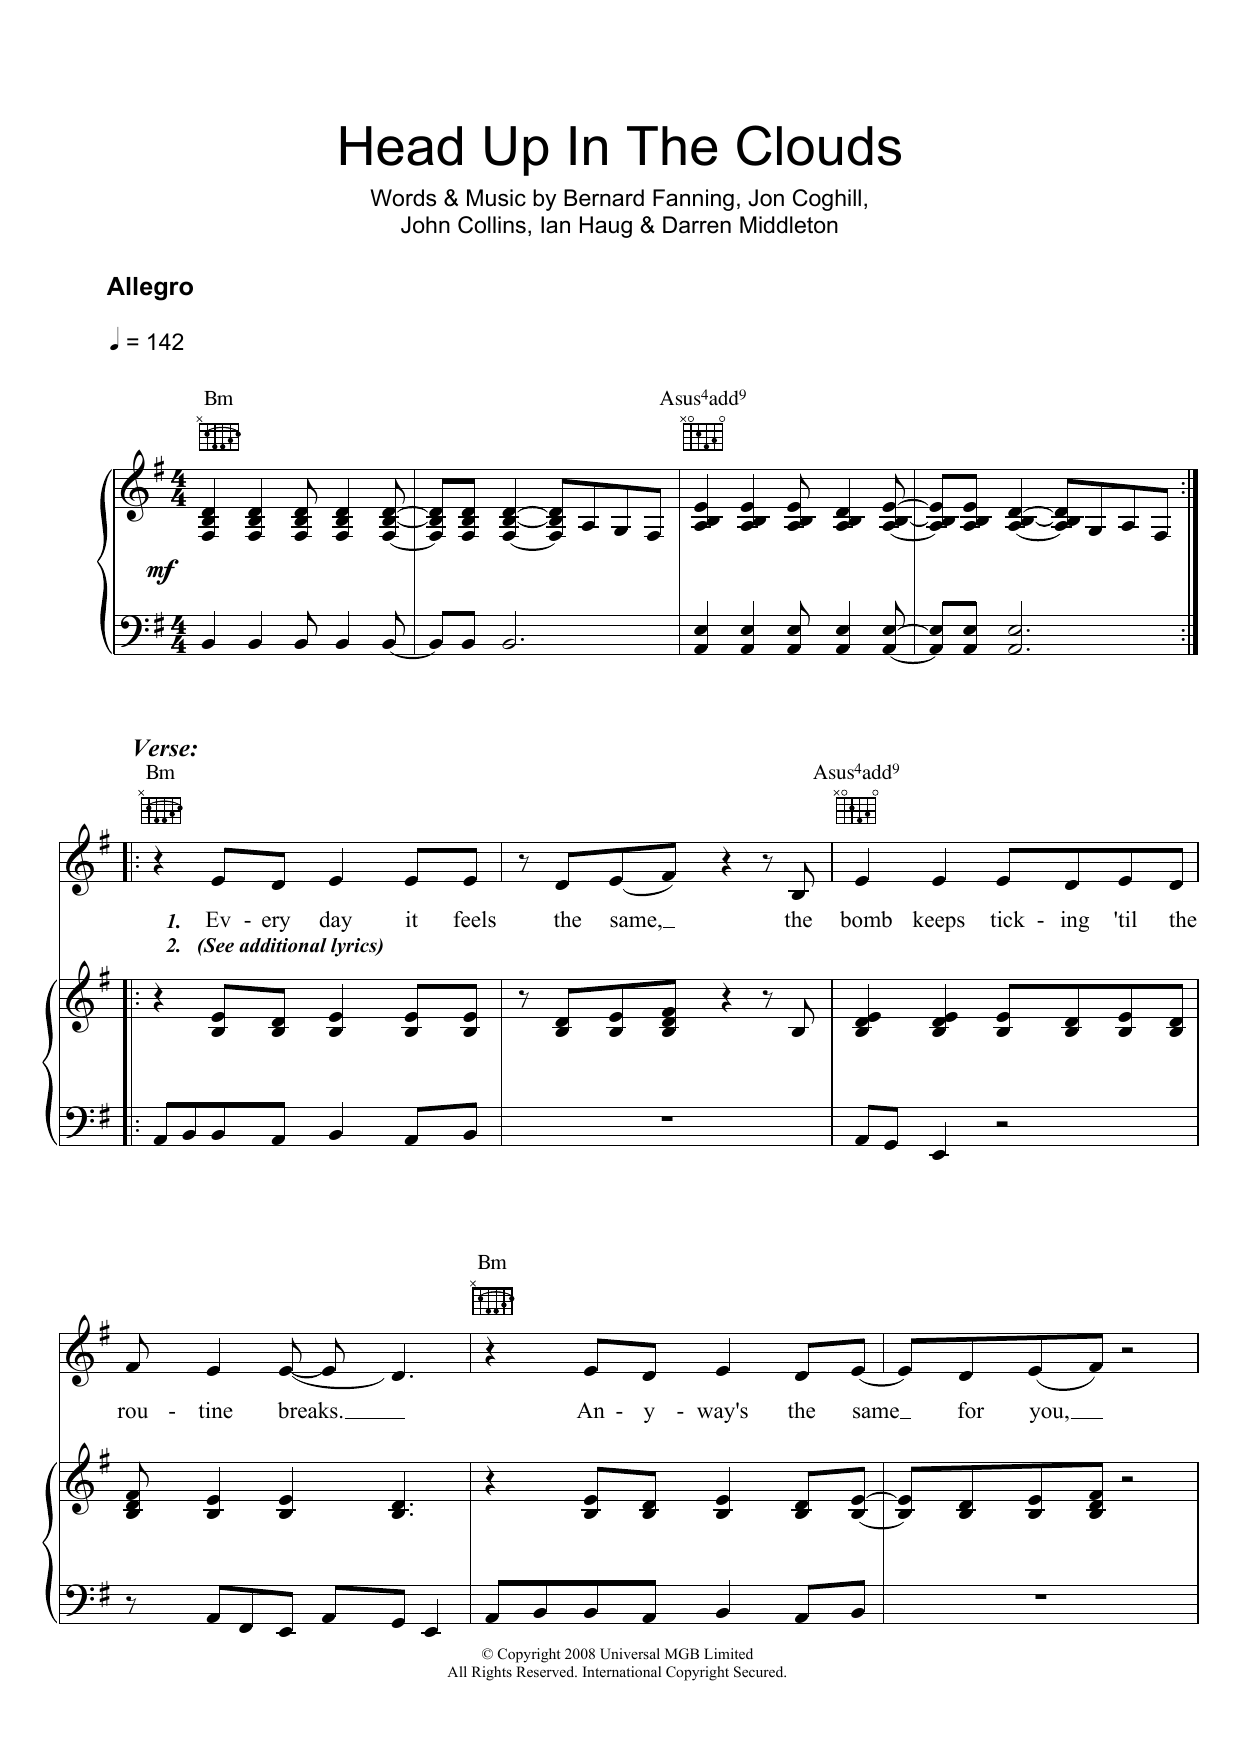 Head Up In The Clouds Sheet Music